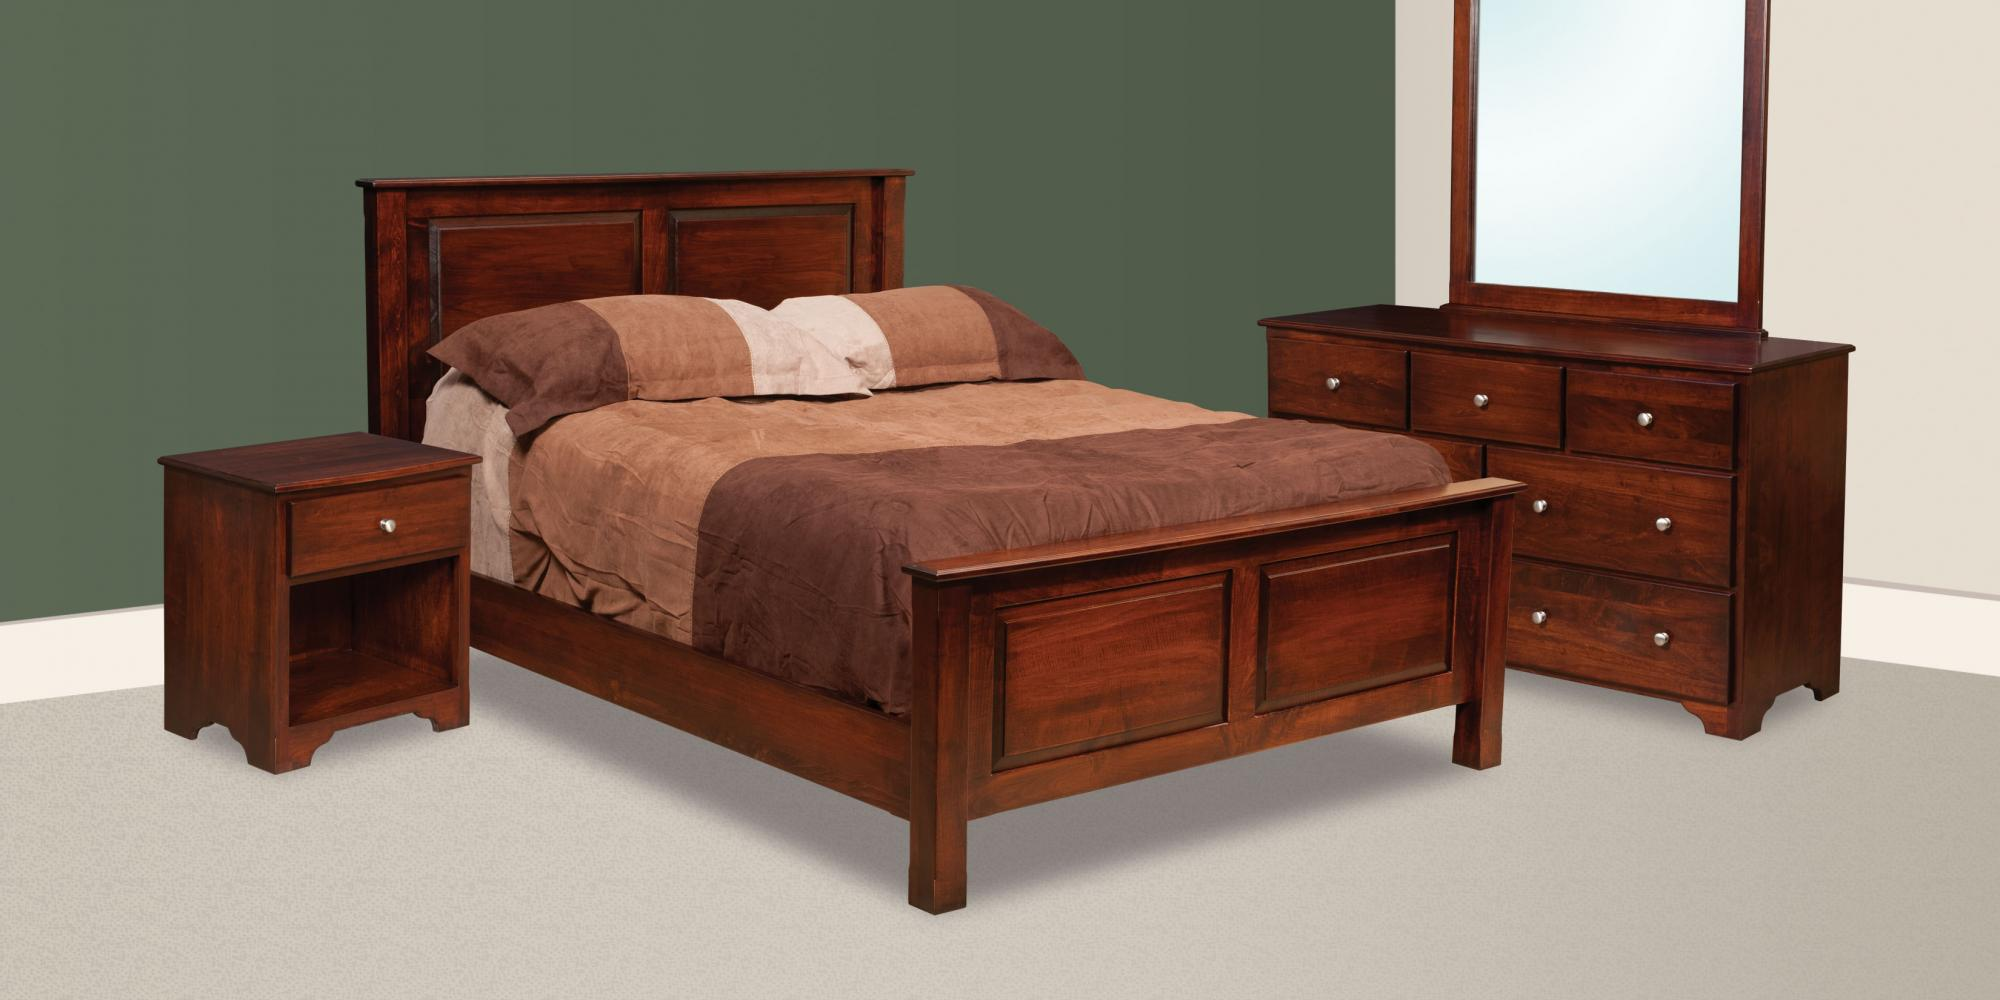 Amish Bedroom Furniture Amish Bedroom Furniture Fabulous For Home Desi 100 Lane Bedroom